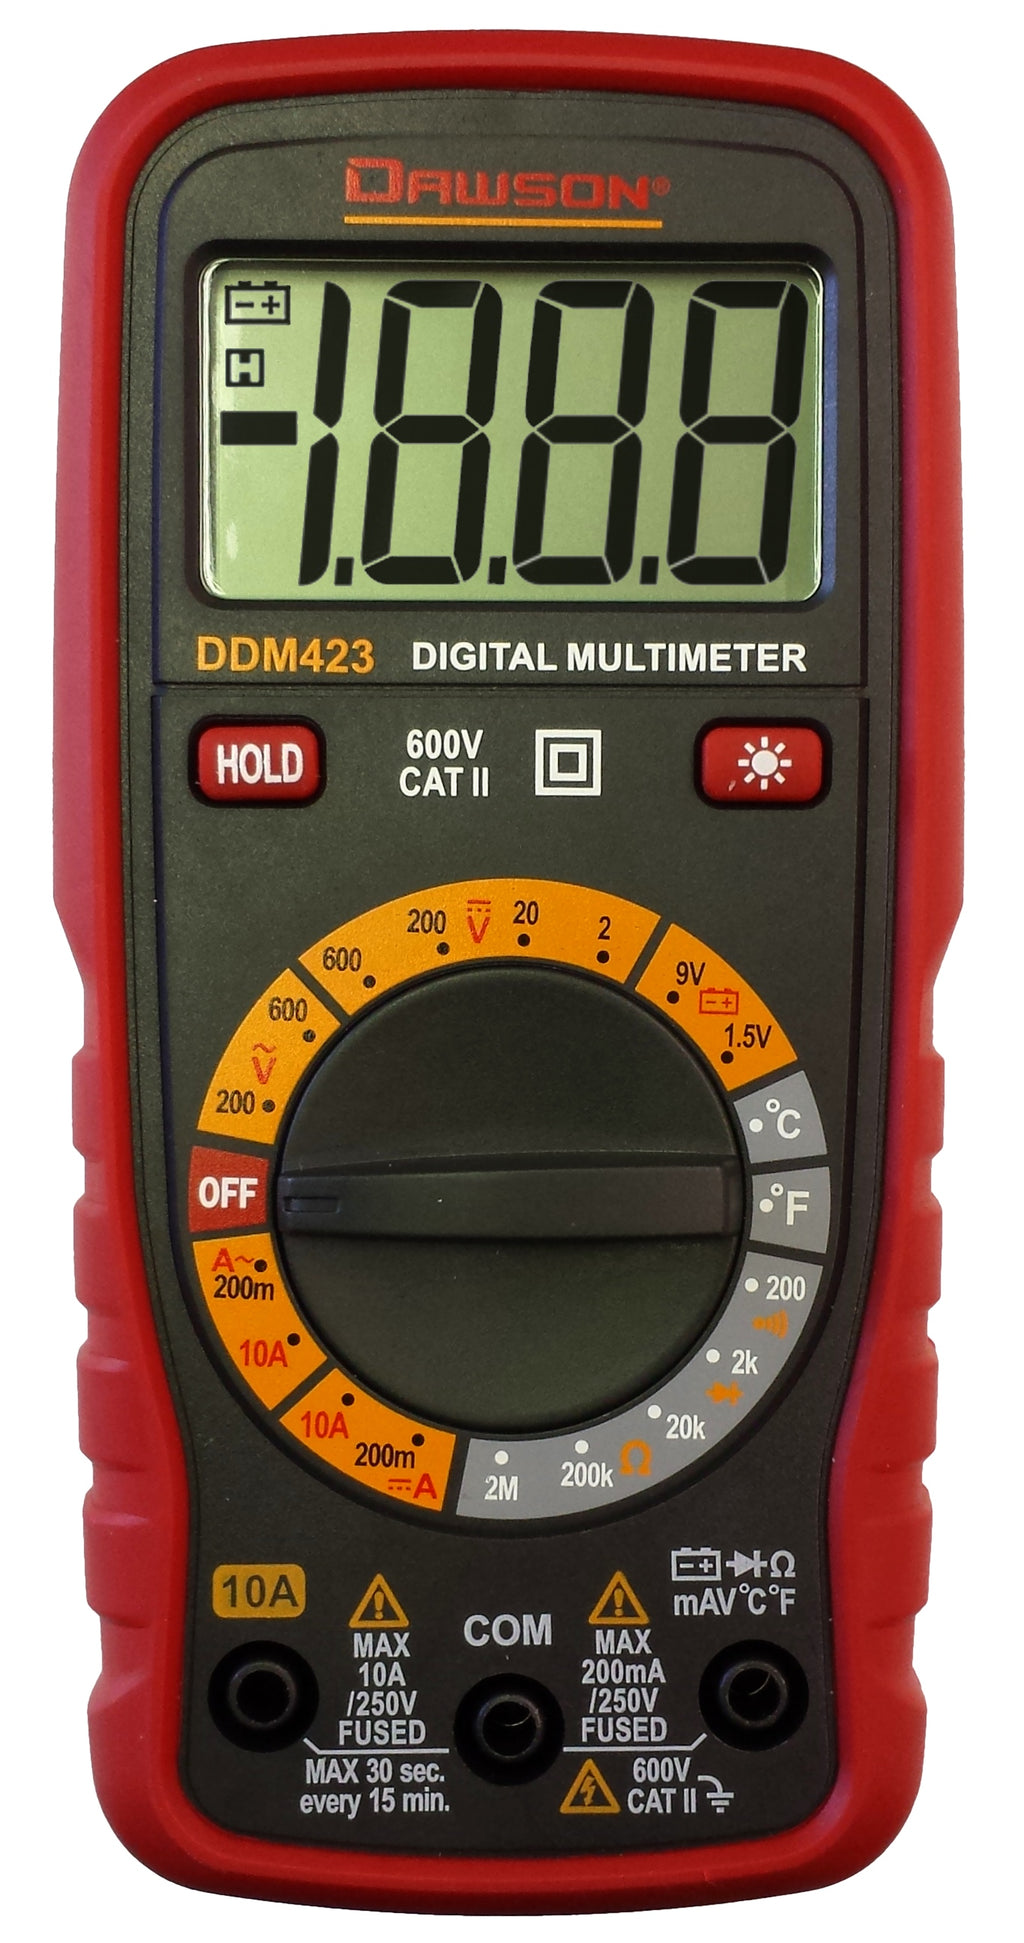 Compact Digital Multimeters - DDM423